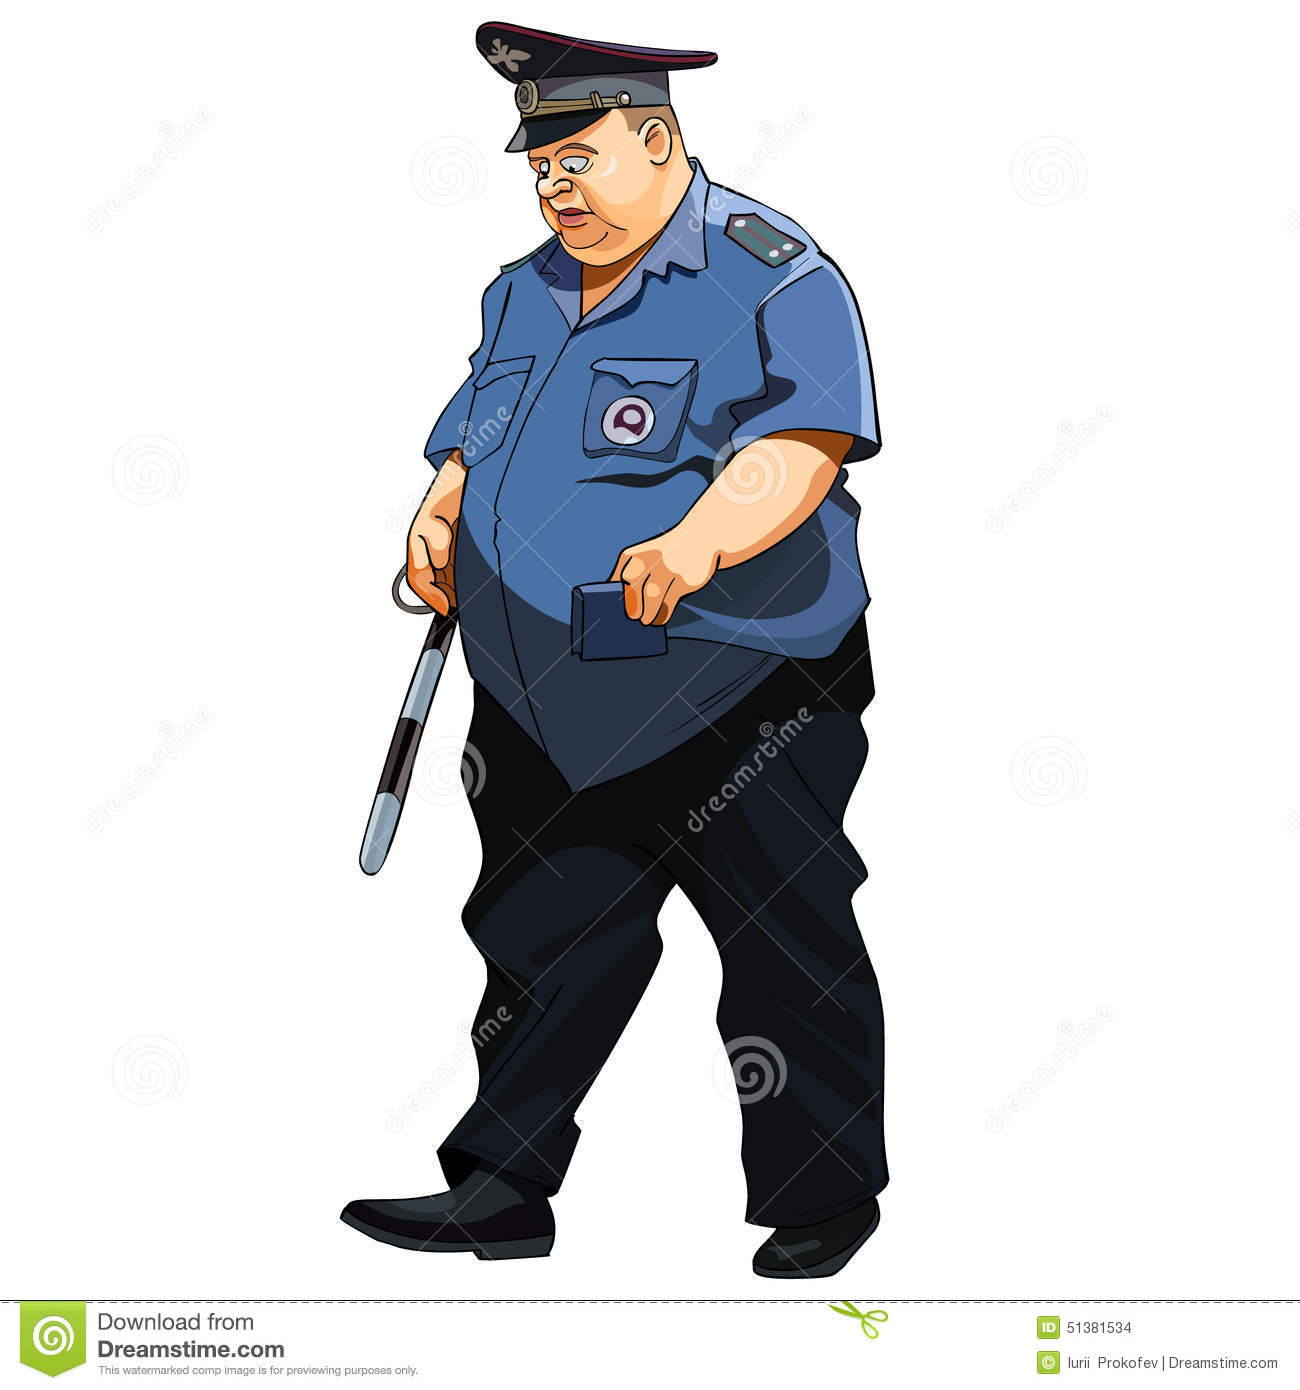 Fat cop oficer of patrol agrees to help